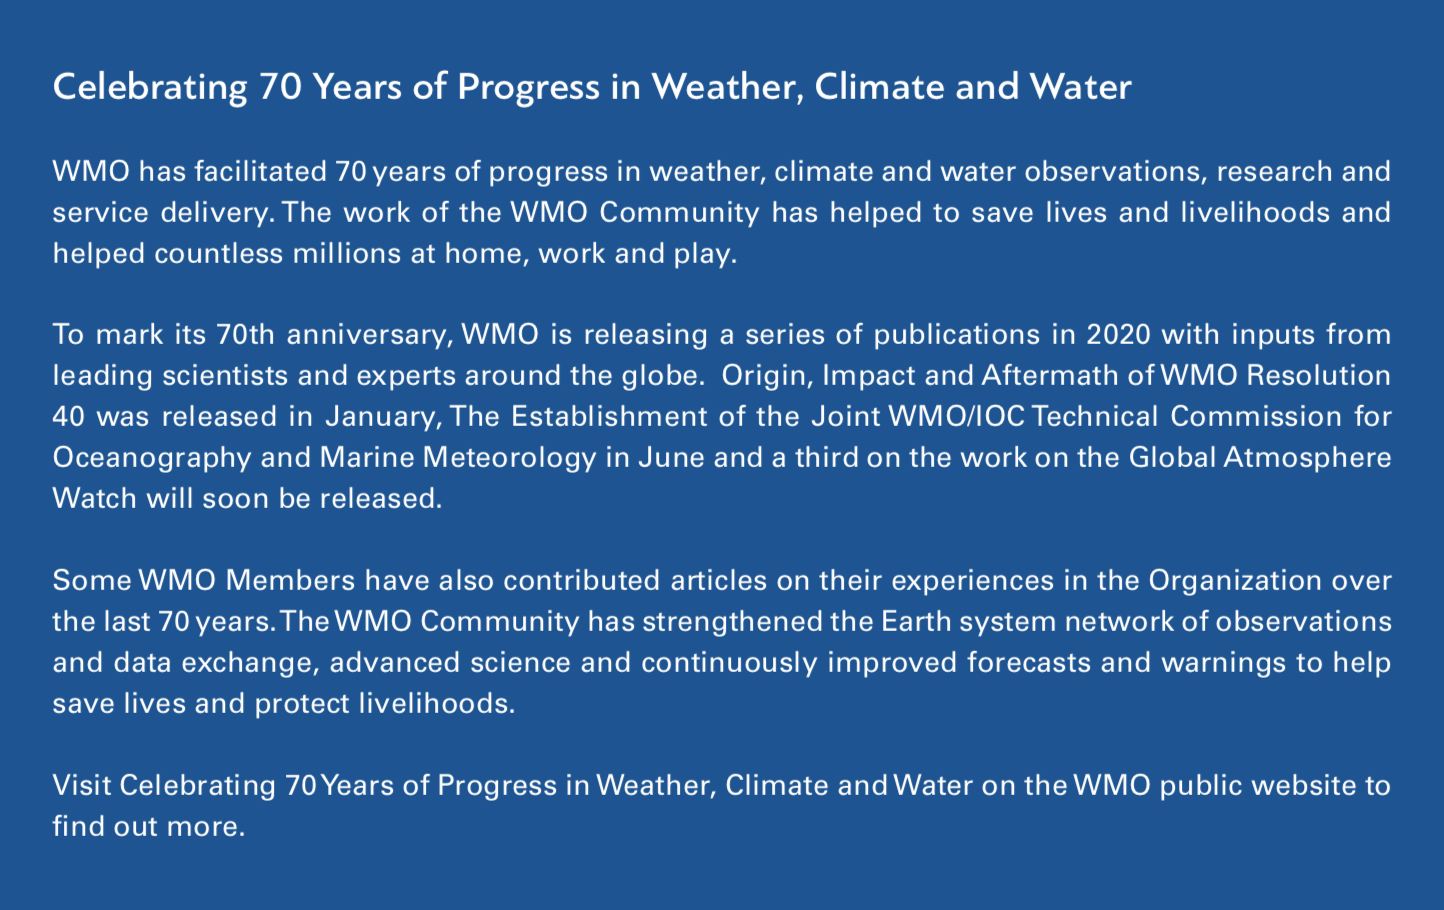 Celebrating 70 Years of Progress in Weather, Climate and Water